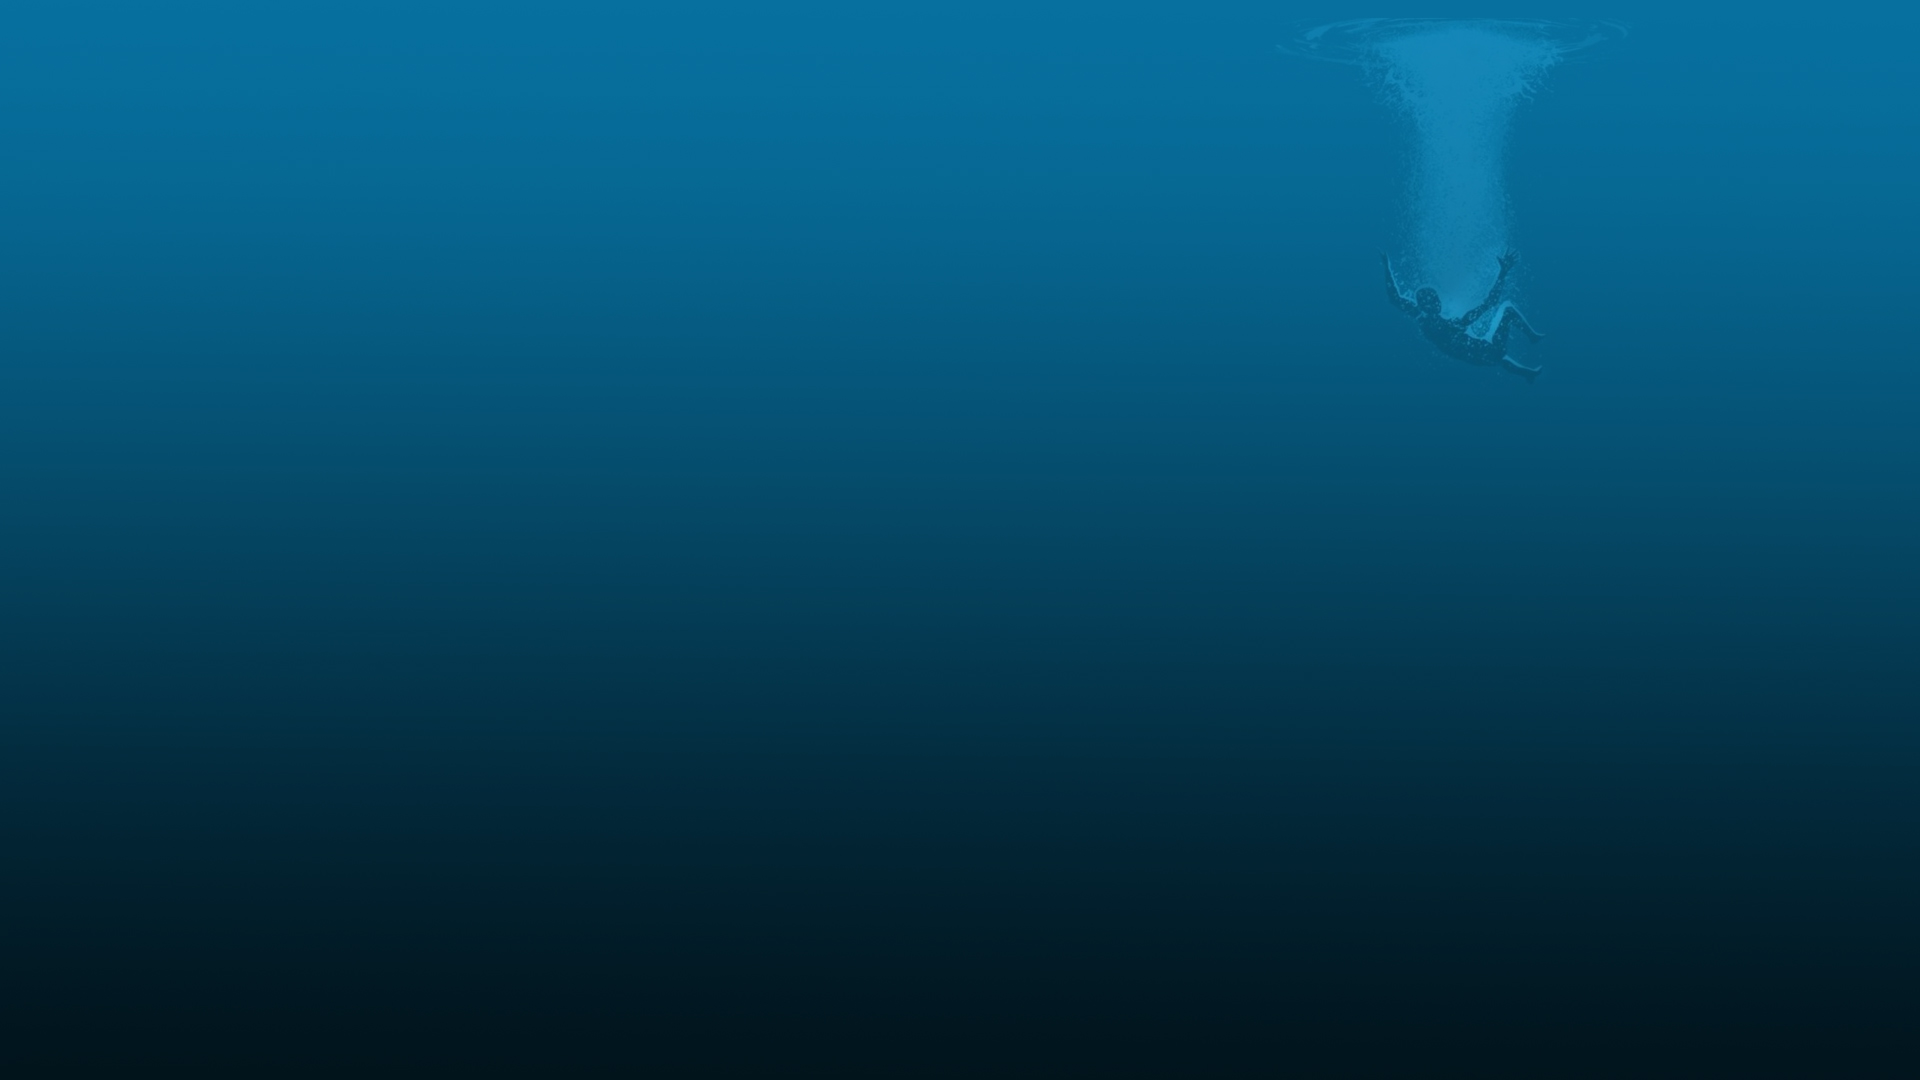 Deep Blue Wallpaper 1920x1080